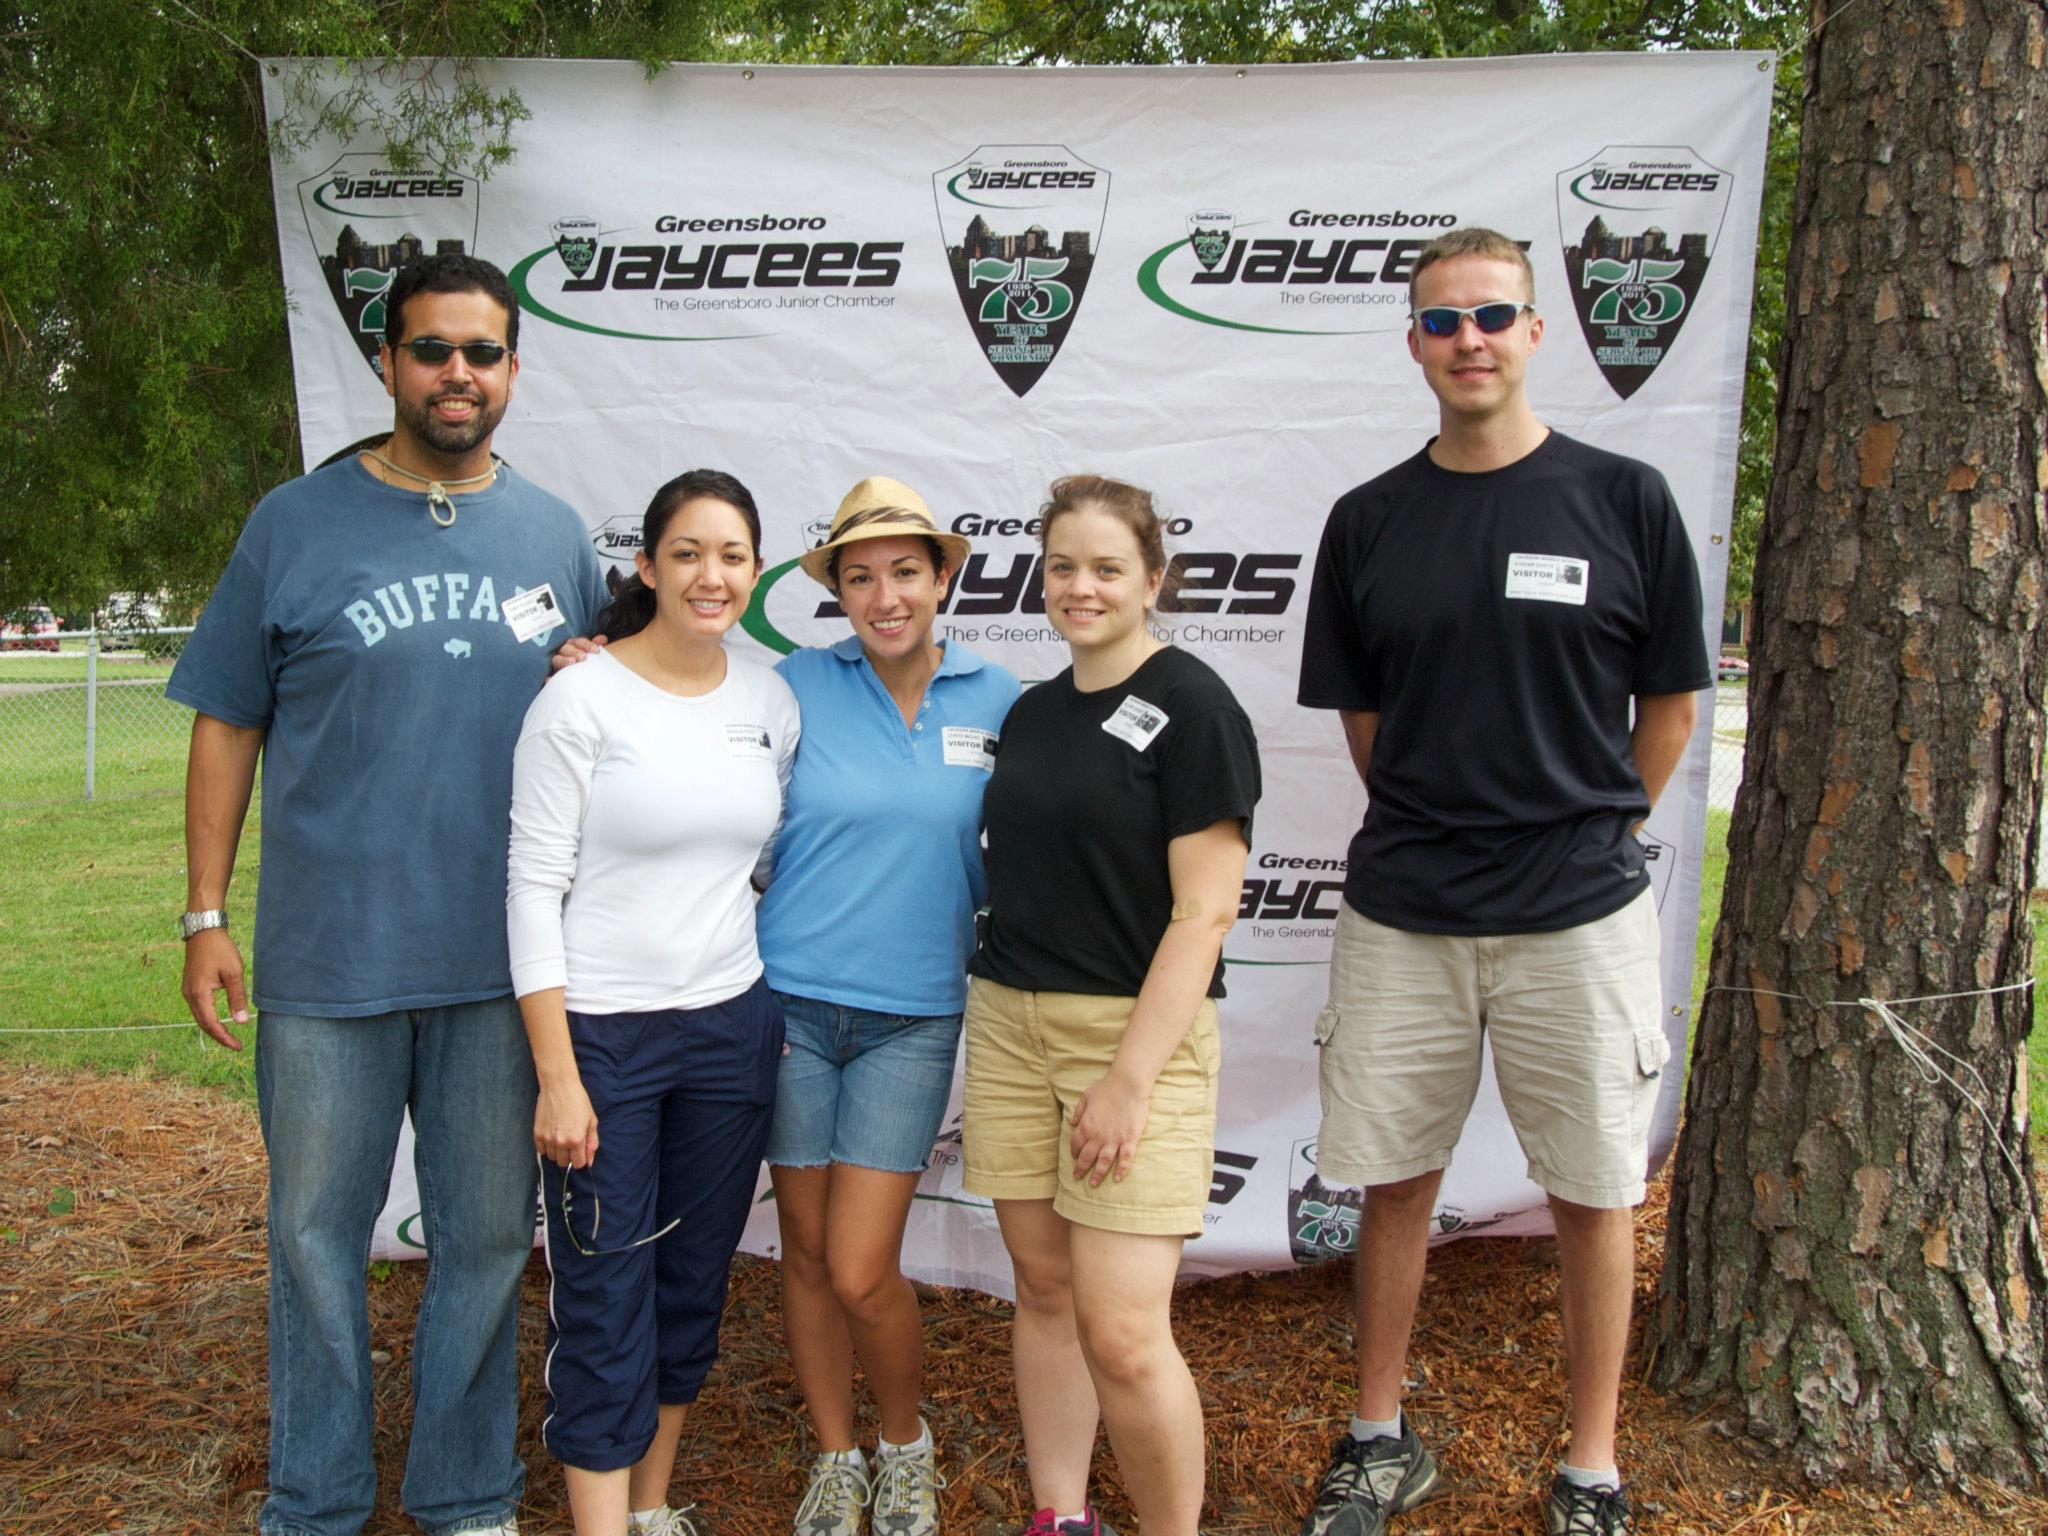 Greensboro Jaycees